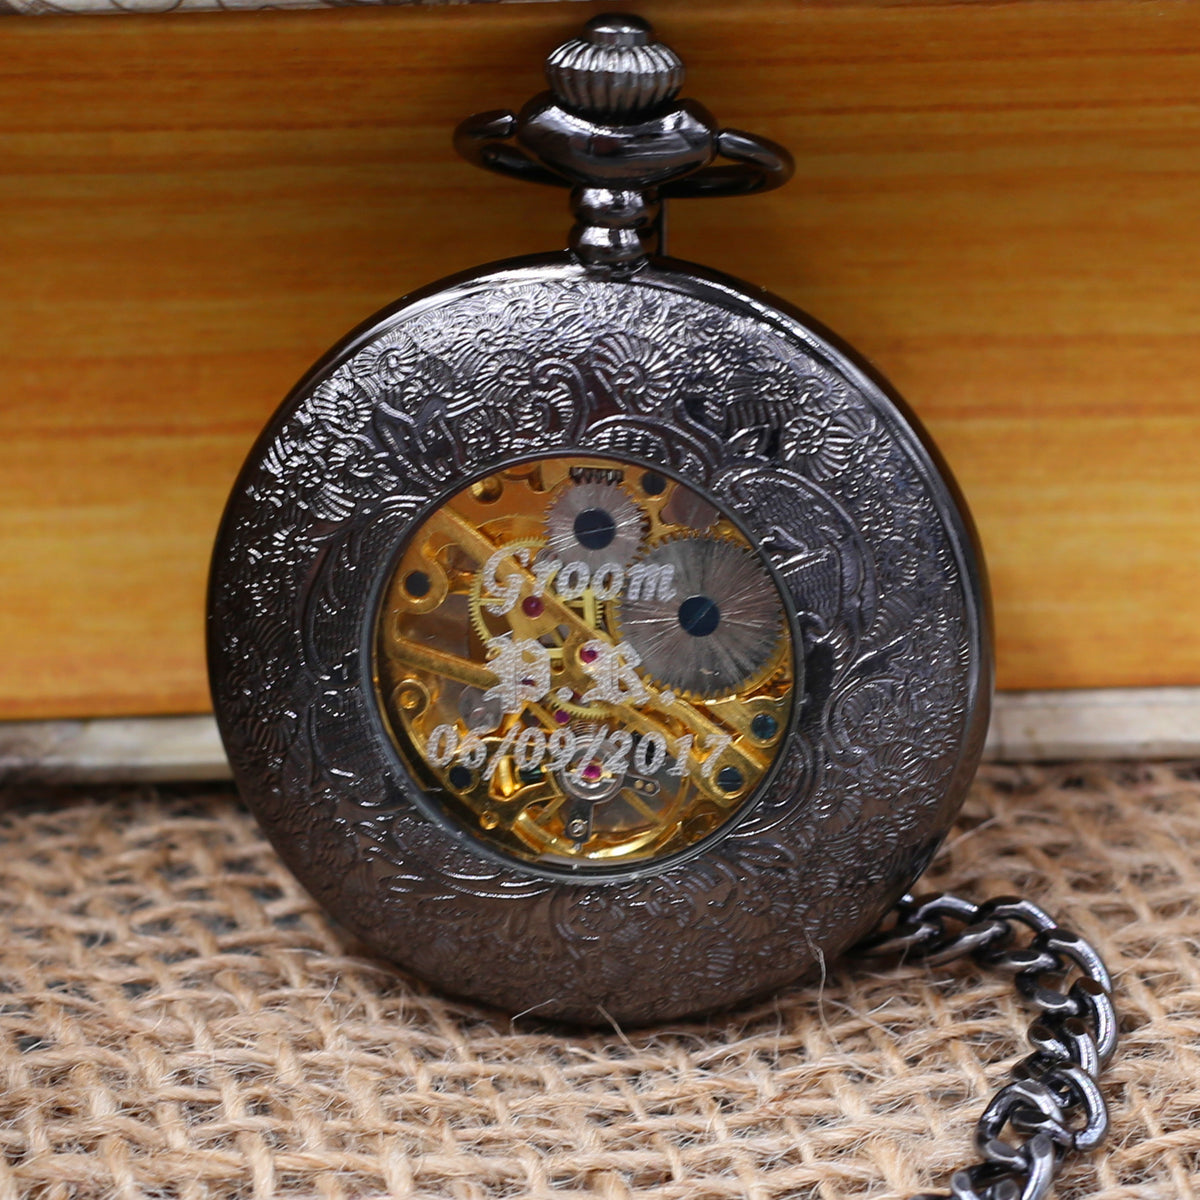 Classic Black Pocket Watch - Personalized Groomsmen Groom Gifts - Men Mechanical watch with chain Wedding - father of the Bride MPW022